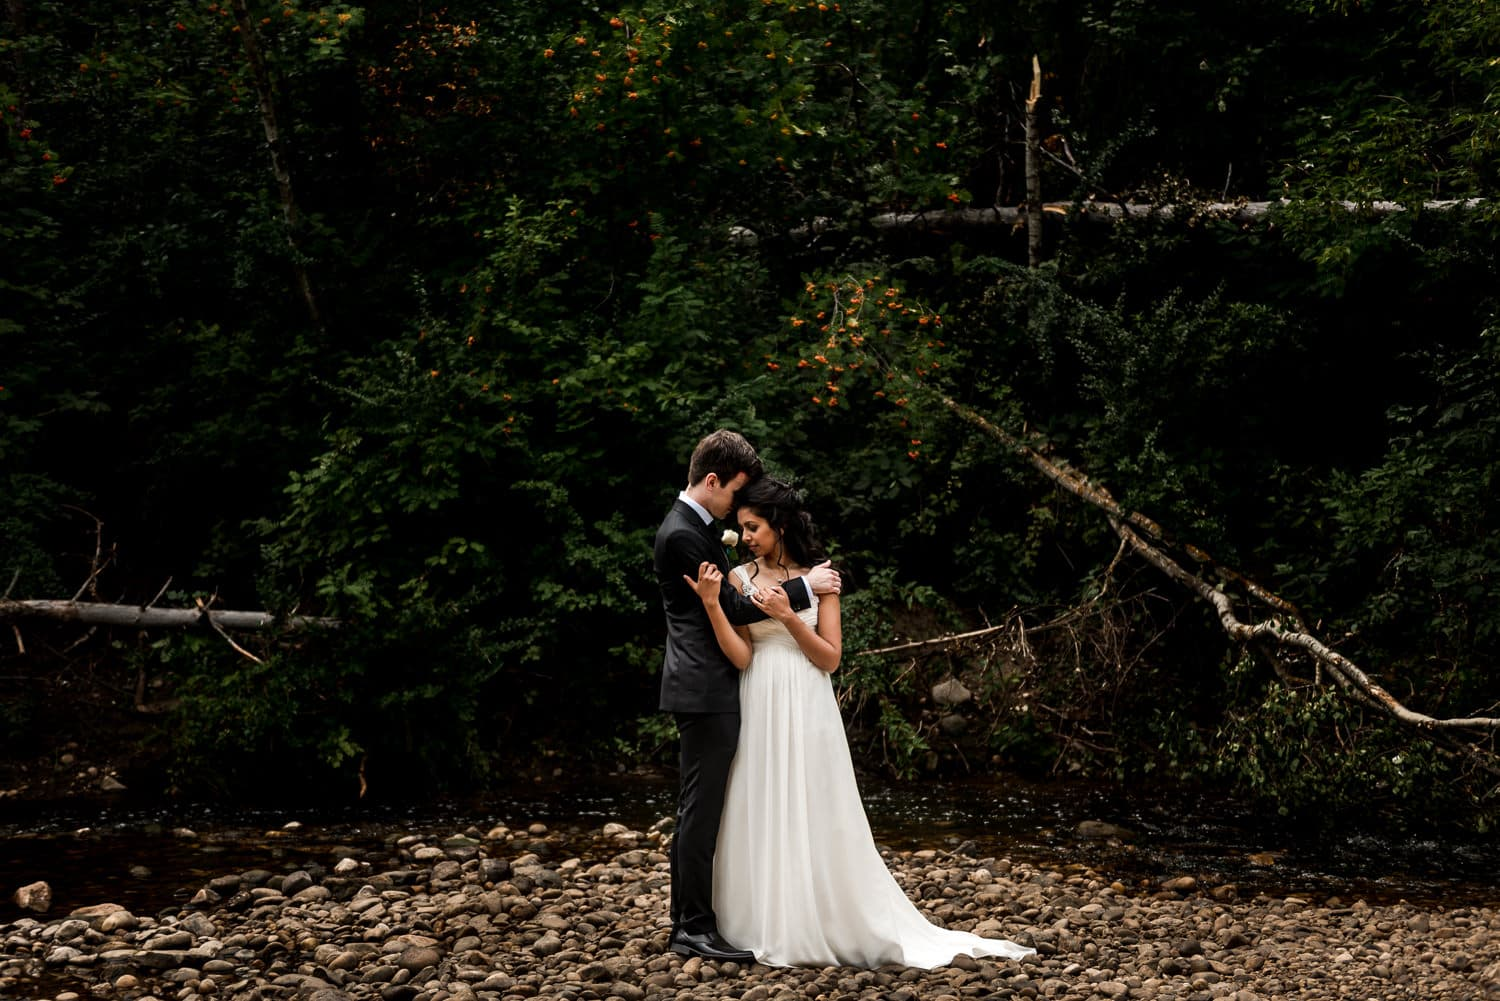 edmonton wedding photographer - wedding at mill creek ravine